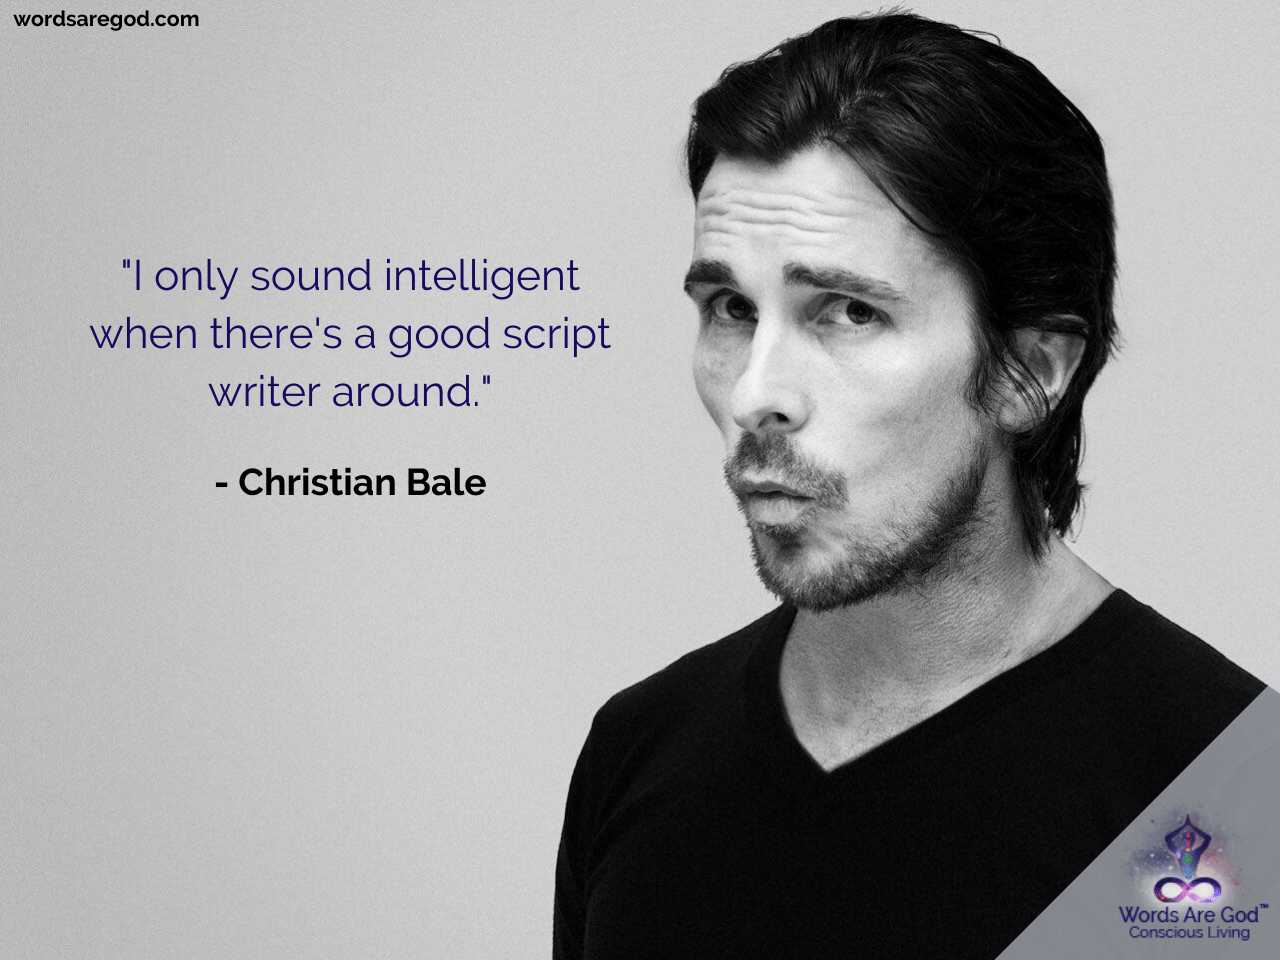 Christian Bale Quotes by Christian Bale